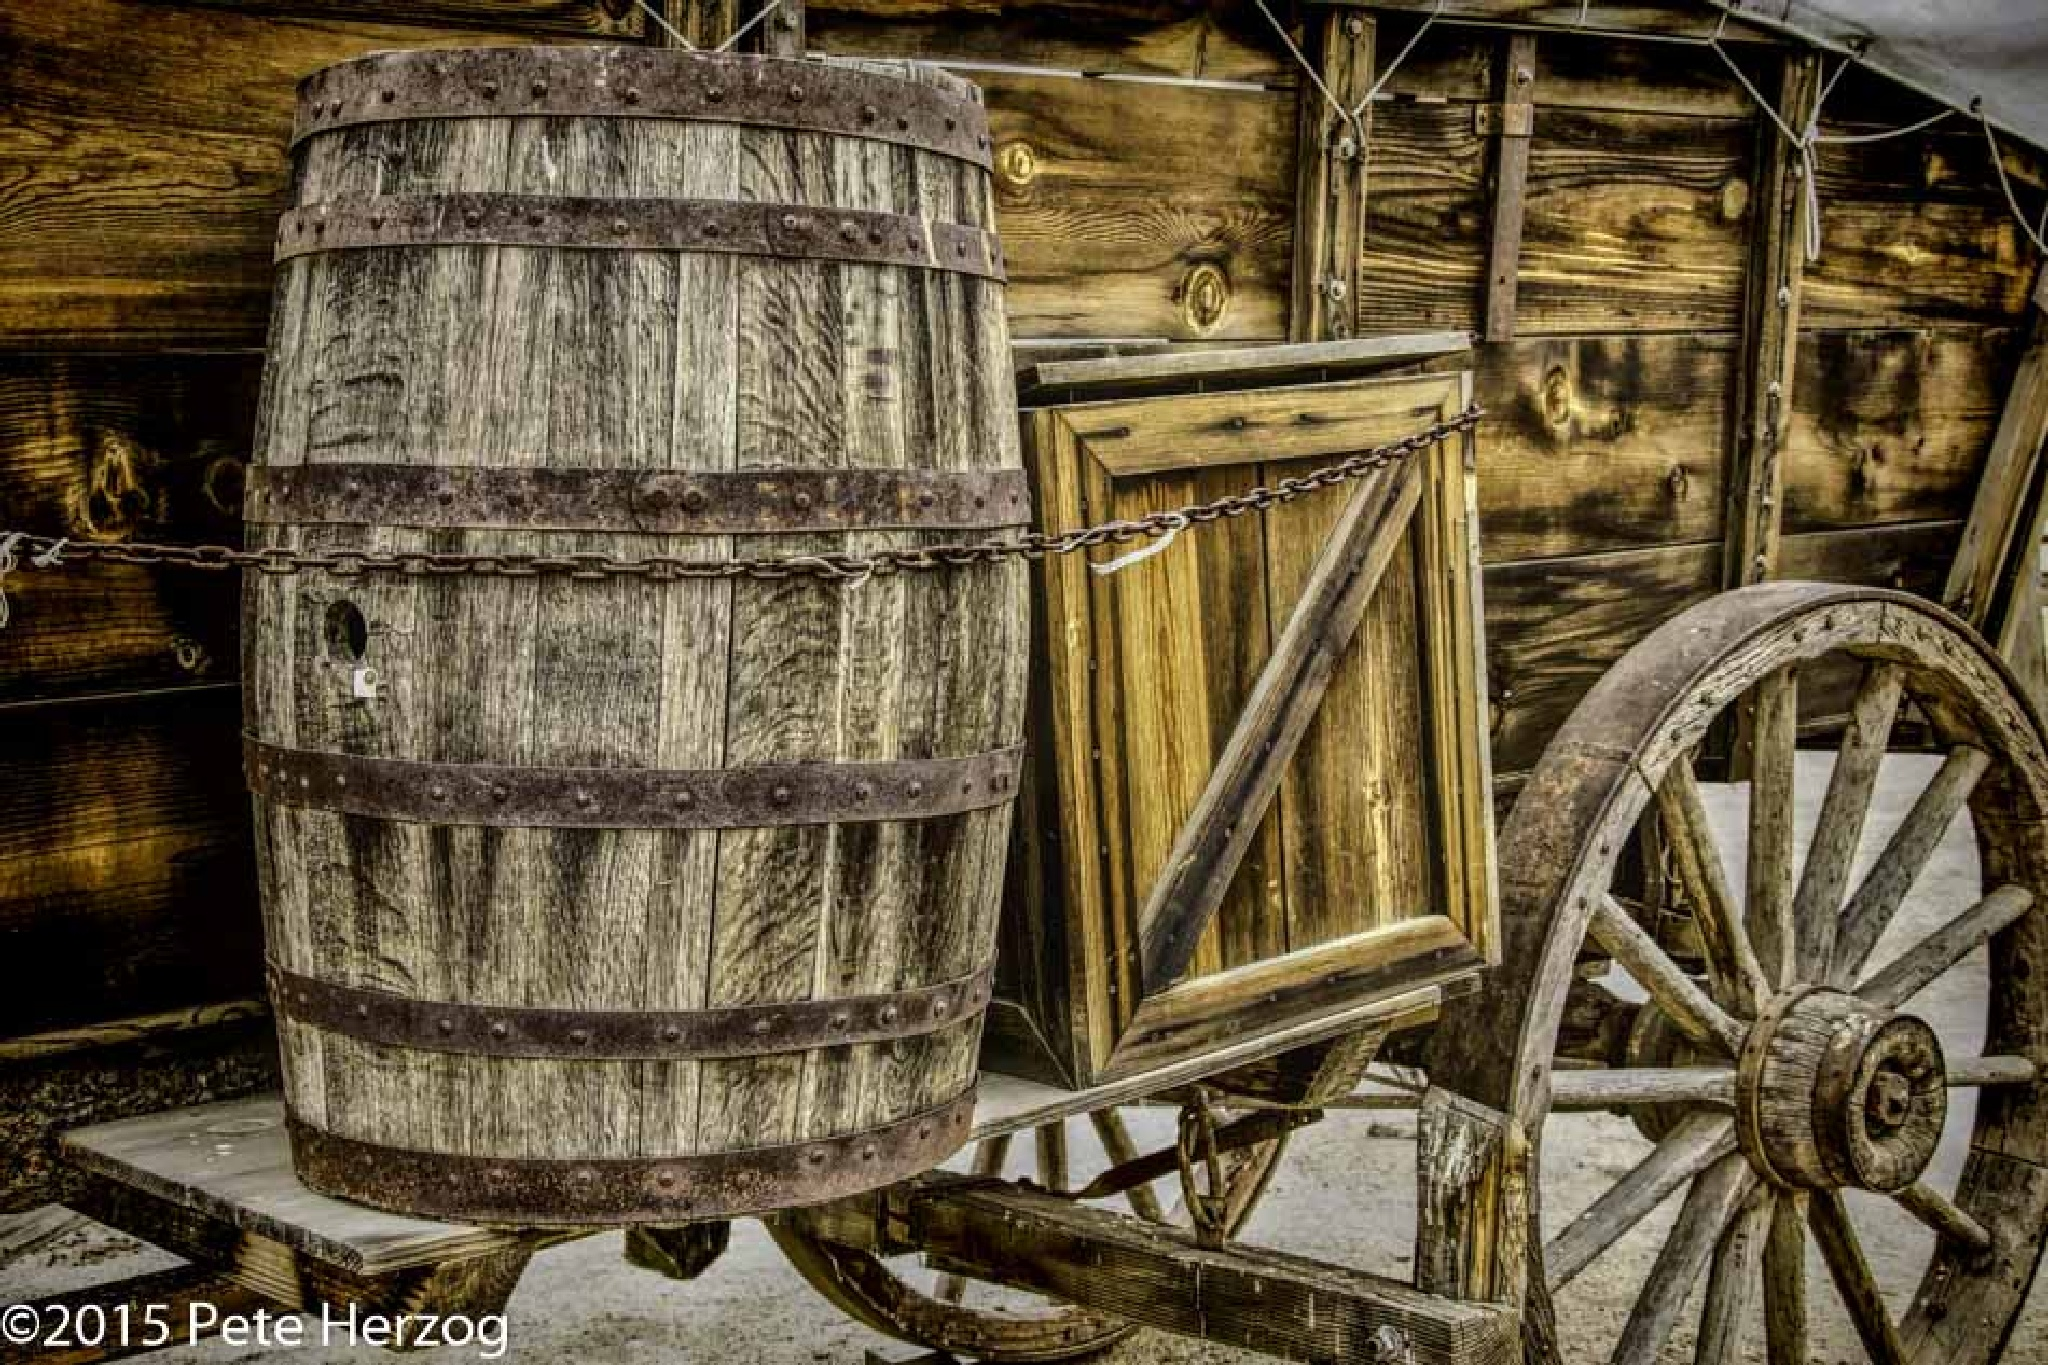 Barrel on Covered Wagon by peter.herzog.3323